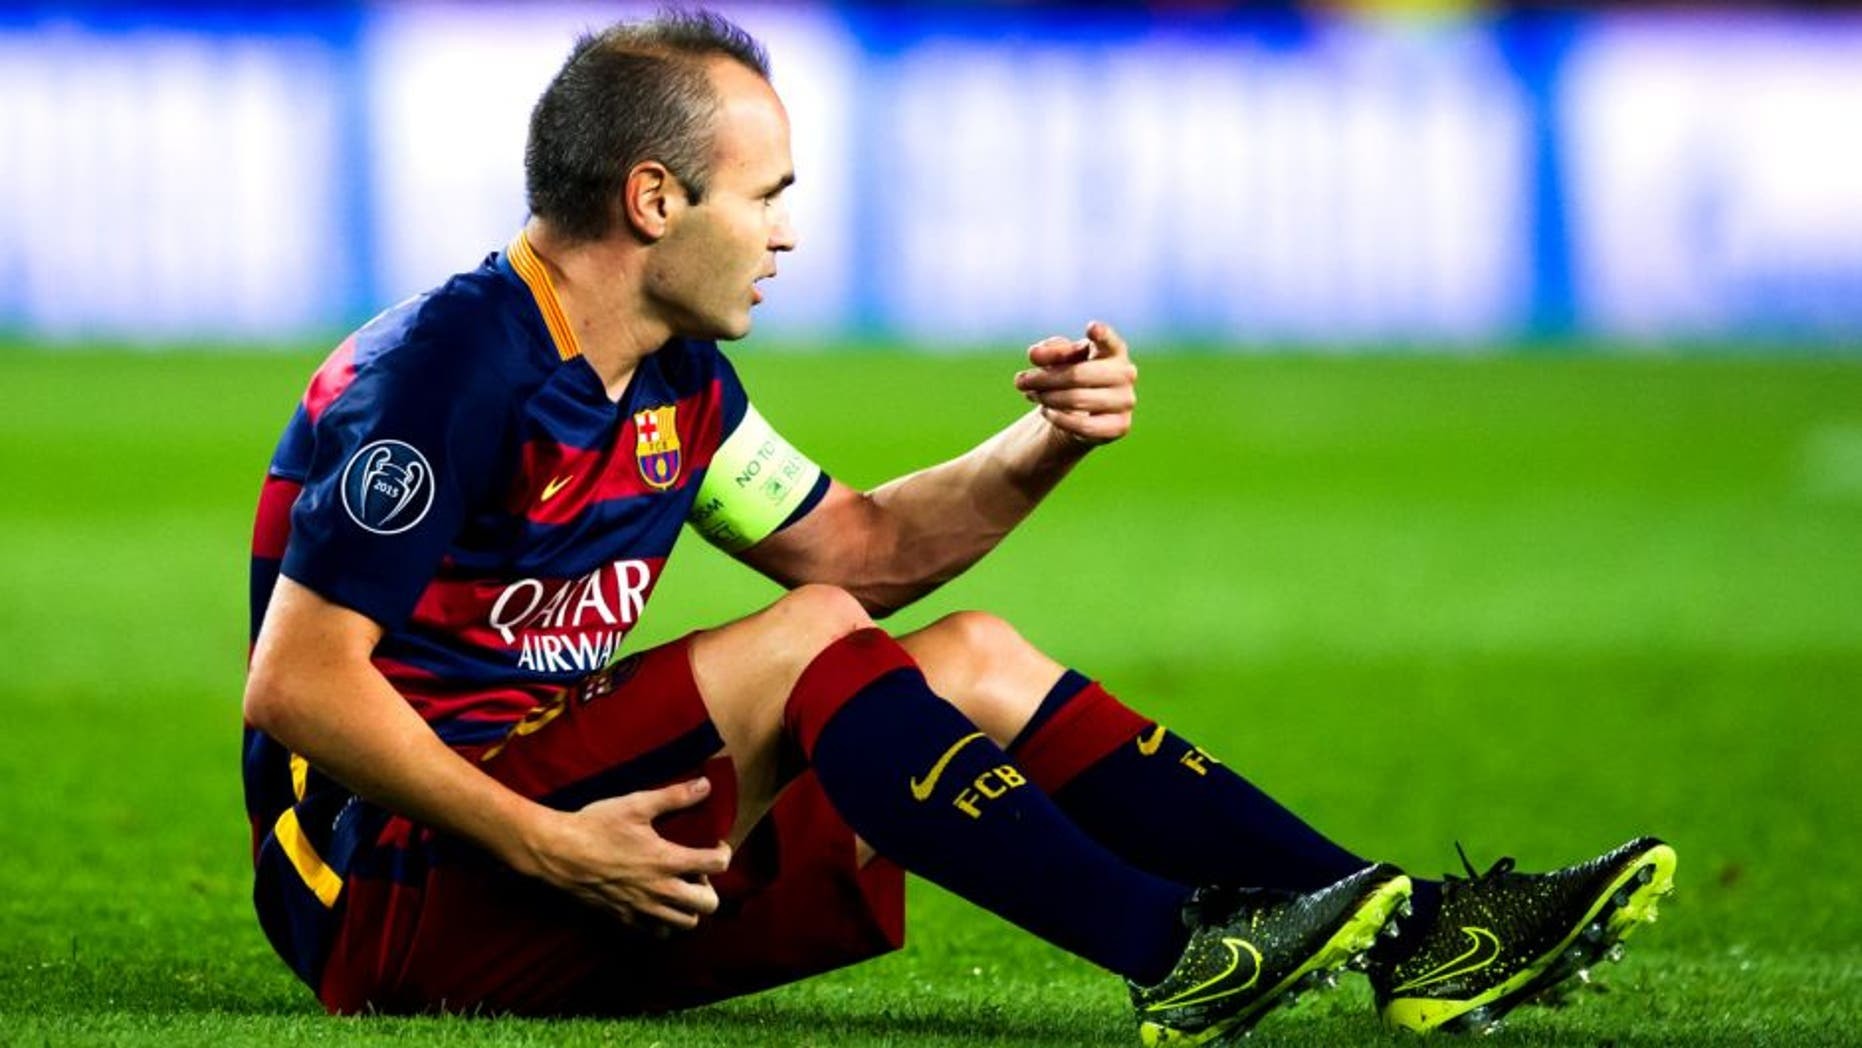 BARCELONA, SPAIN - SEPTEMBER 29: Andres Iniesta of FC Barcelona asks to his bench to be substituted as he lays injured during the UEFA Champions League Group E match between FC Barcelona and Bayern 04 Leverkusen at Camp Nou on September 29, 2015 in Barcelona, Spain. (Photo by Alex Caparros/Getty Images)